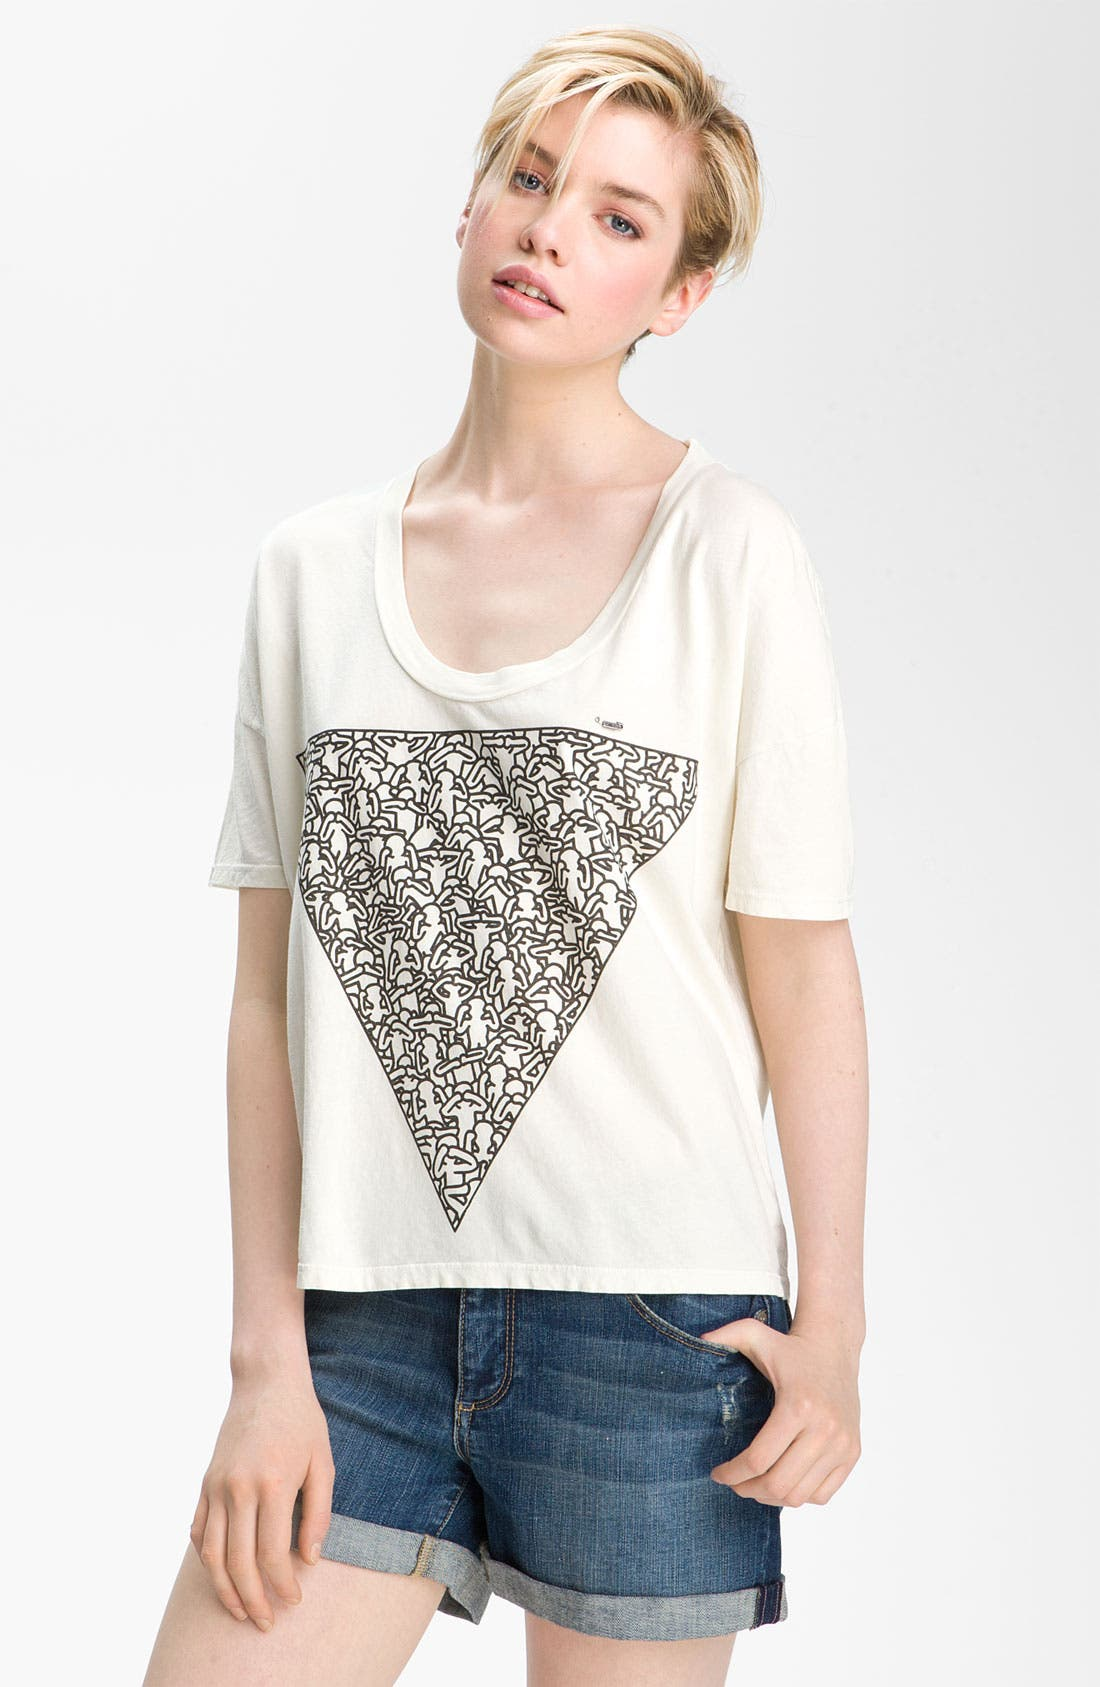 Main Image - Obey 'Triangle of Friends' Graphic Crop Top